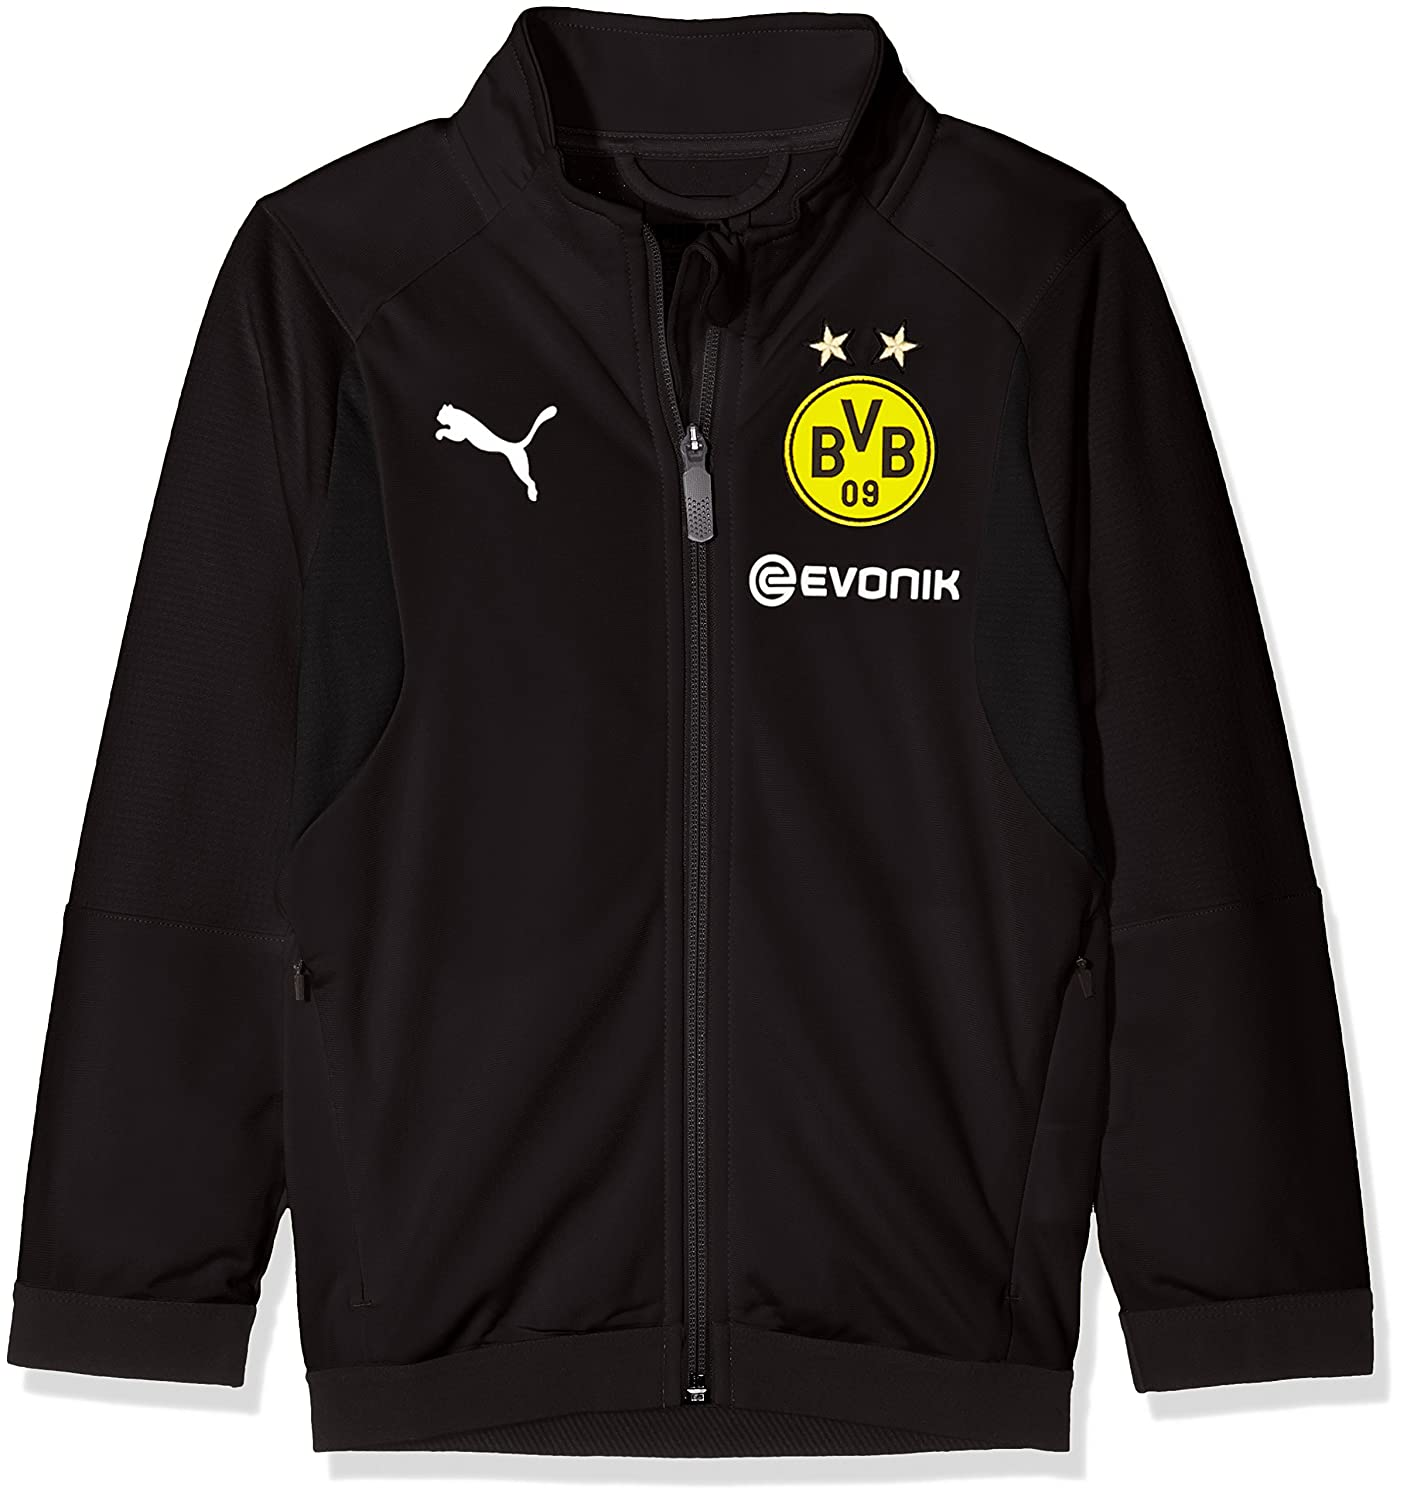 Puma Kinder BVB Poly Jacket Jr Sponsor Logo with 2 Side Pockets Wit Jacke